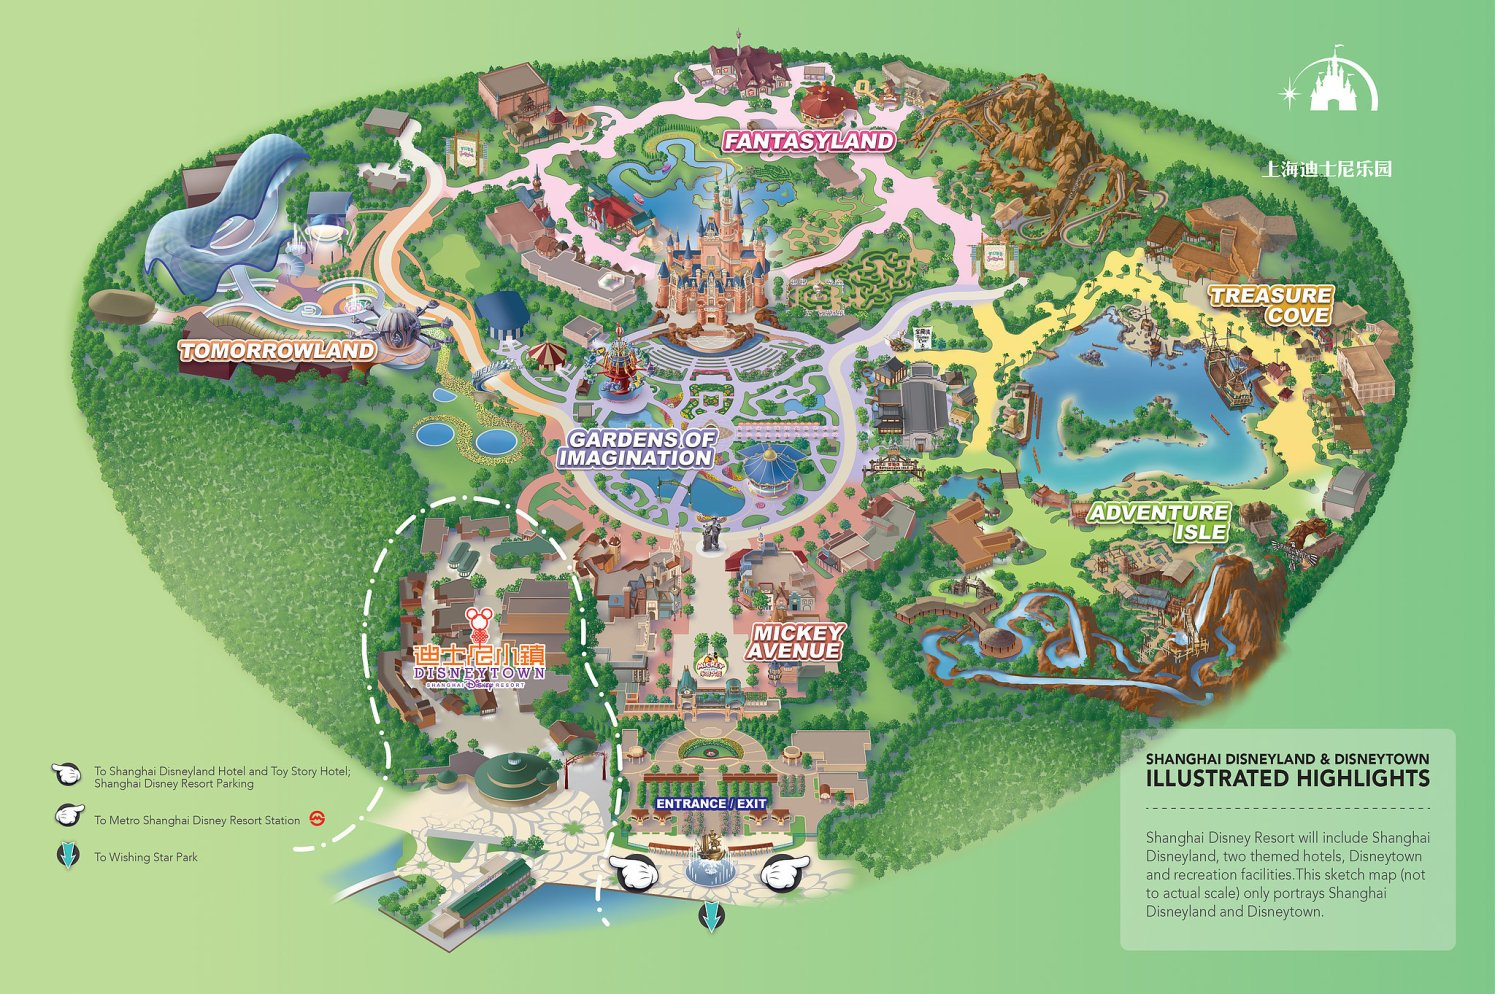 Map-Shanghai-Disneyland-Disneytown